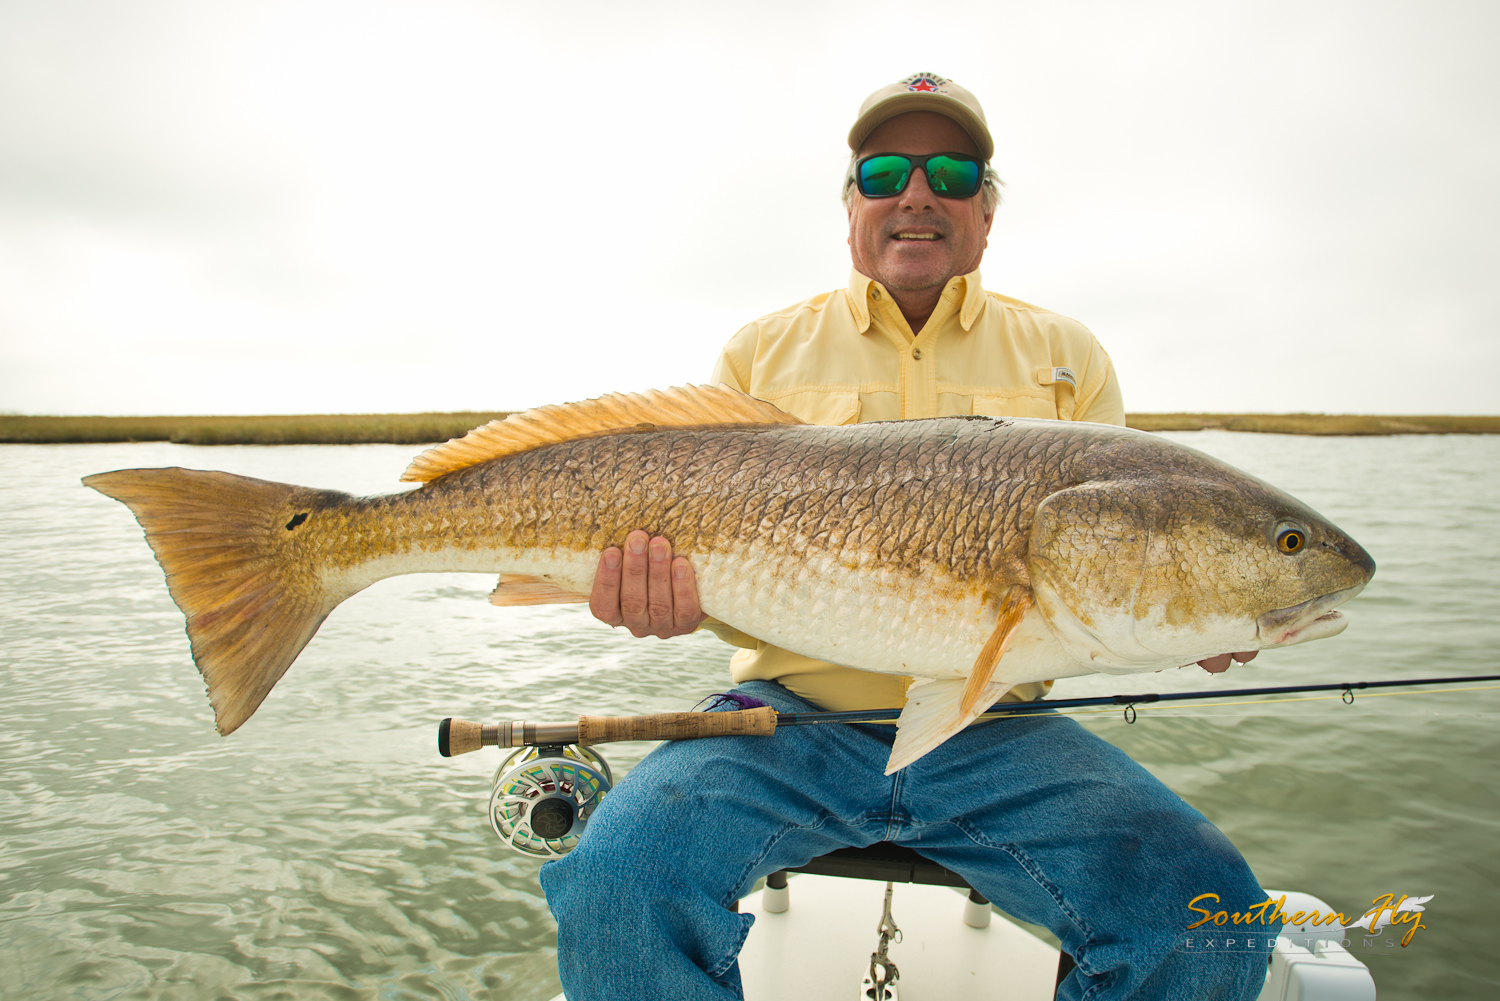 Louisiana Shallow Water Light Tackle Fly Fishing with Southern Fly Expeditions